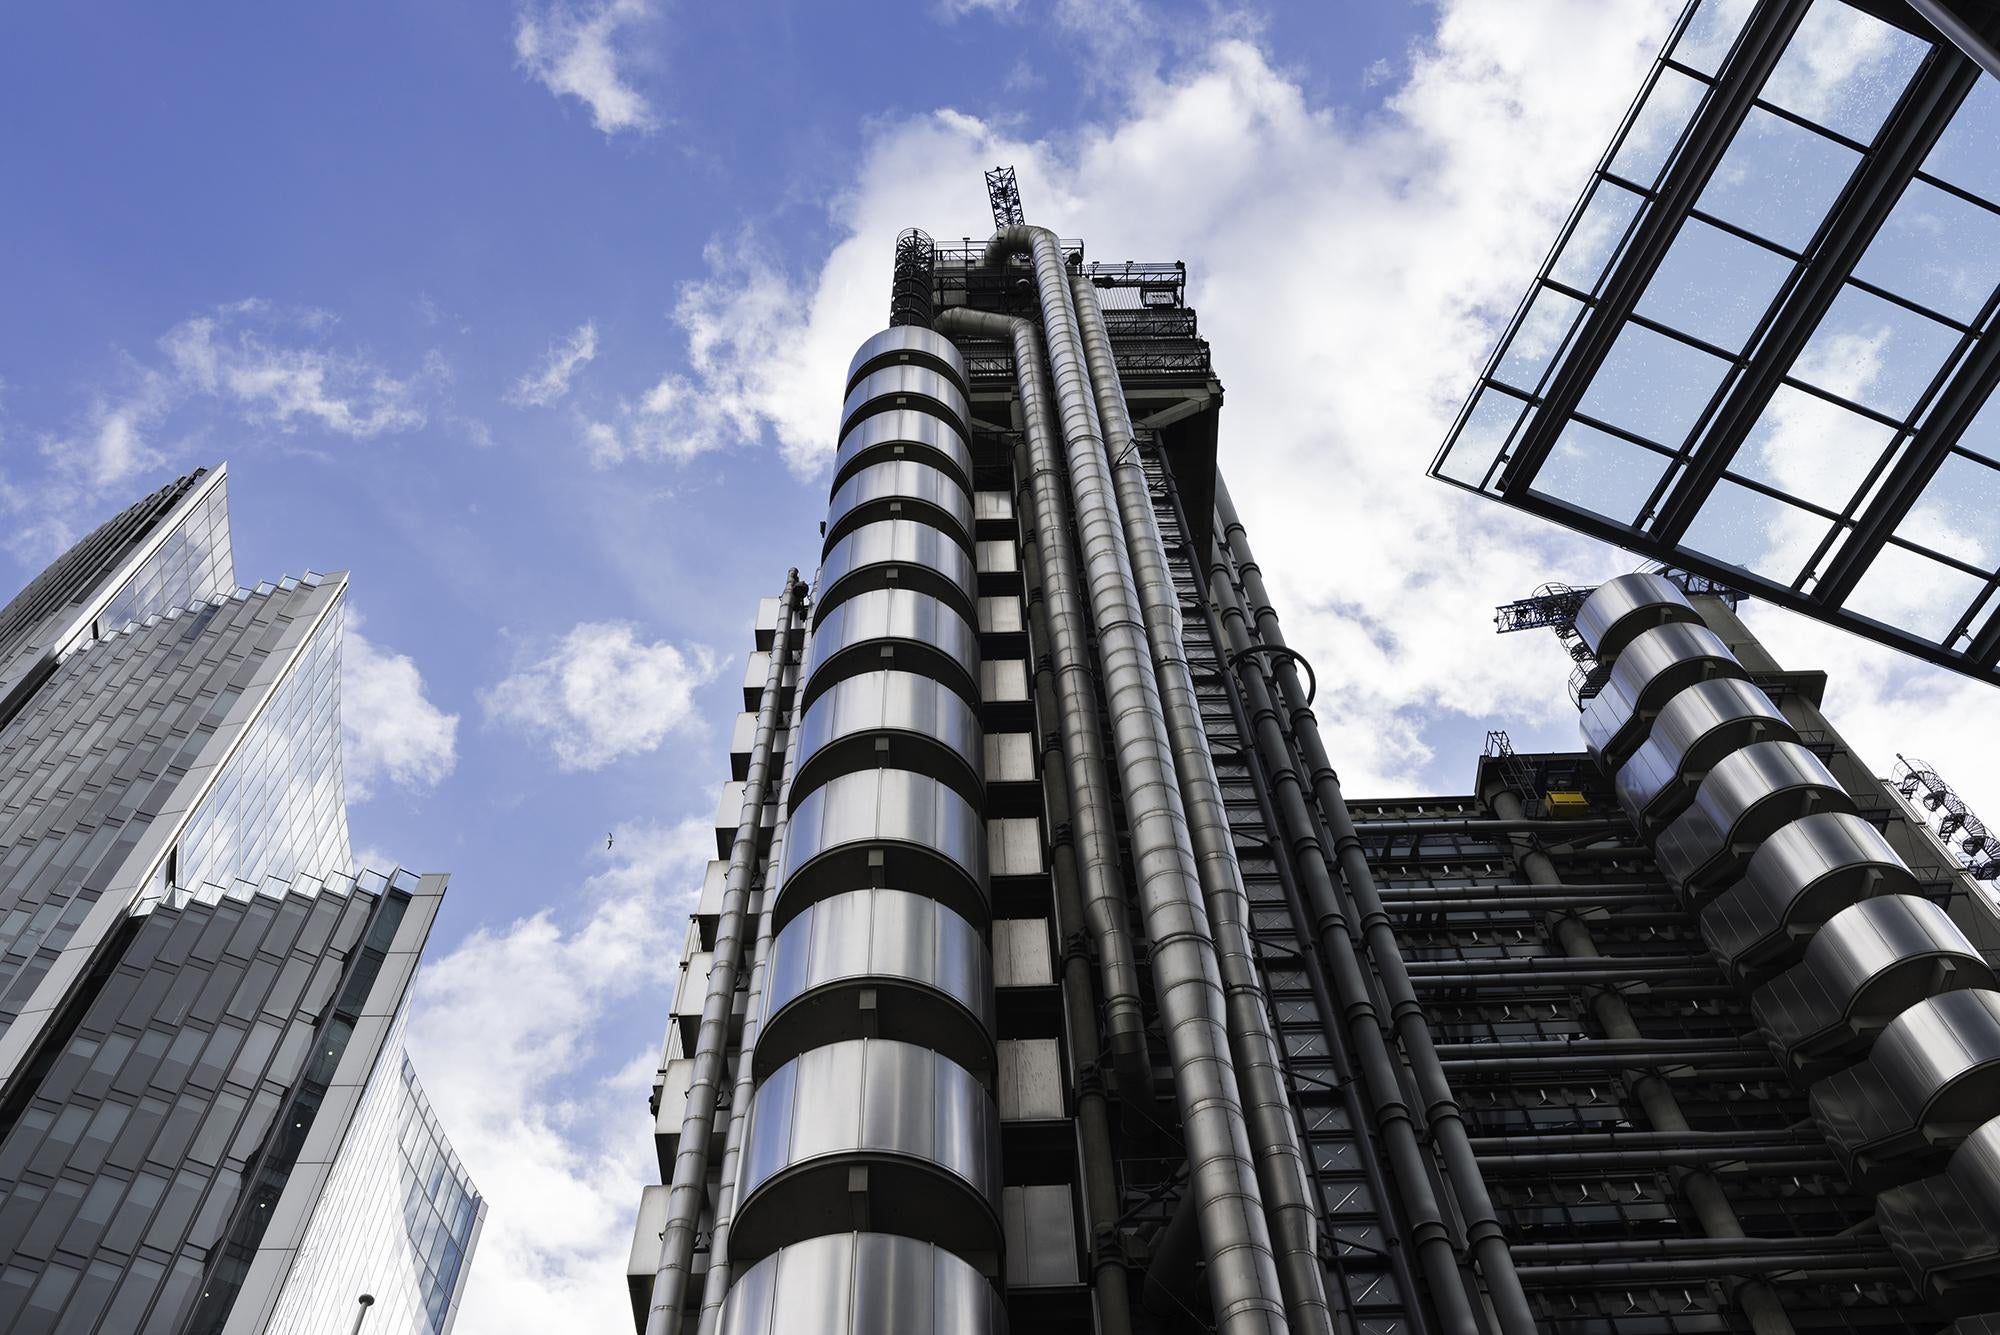 Edificio en Lloyd's London Building